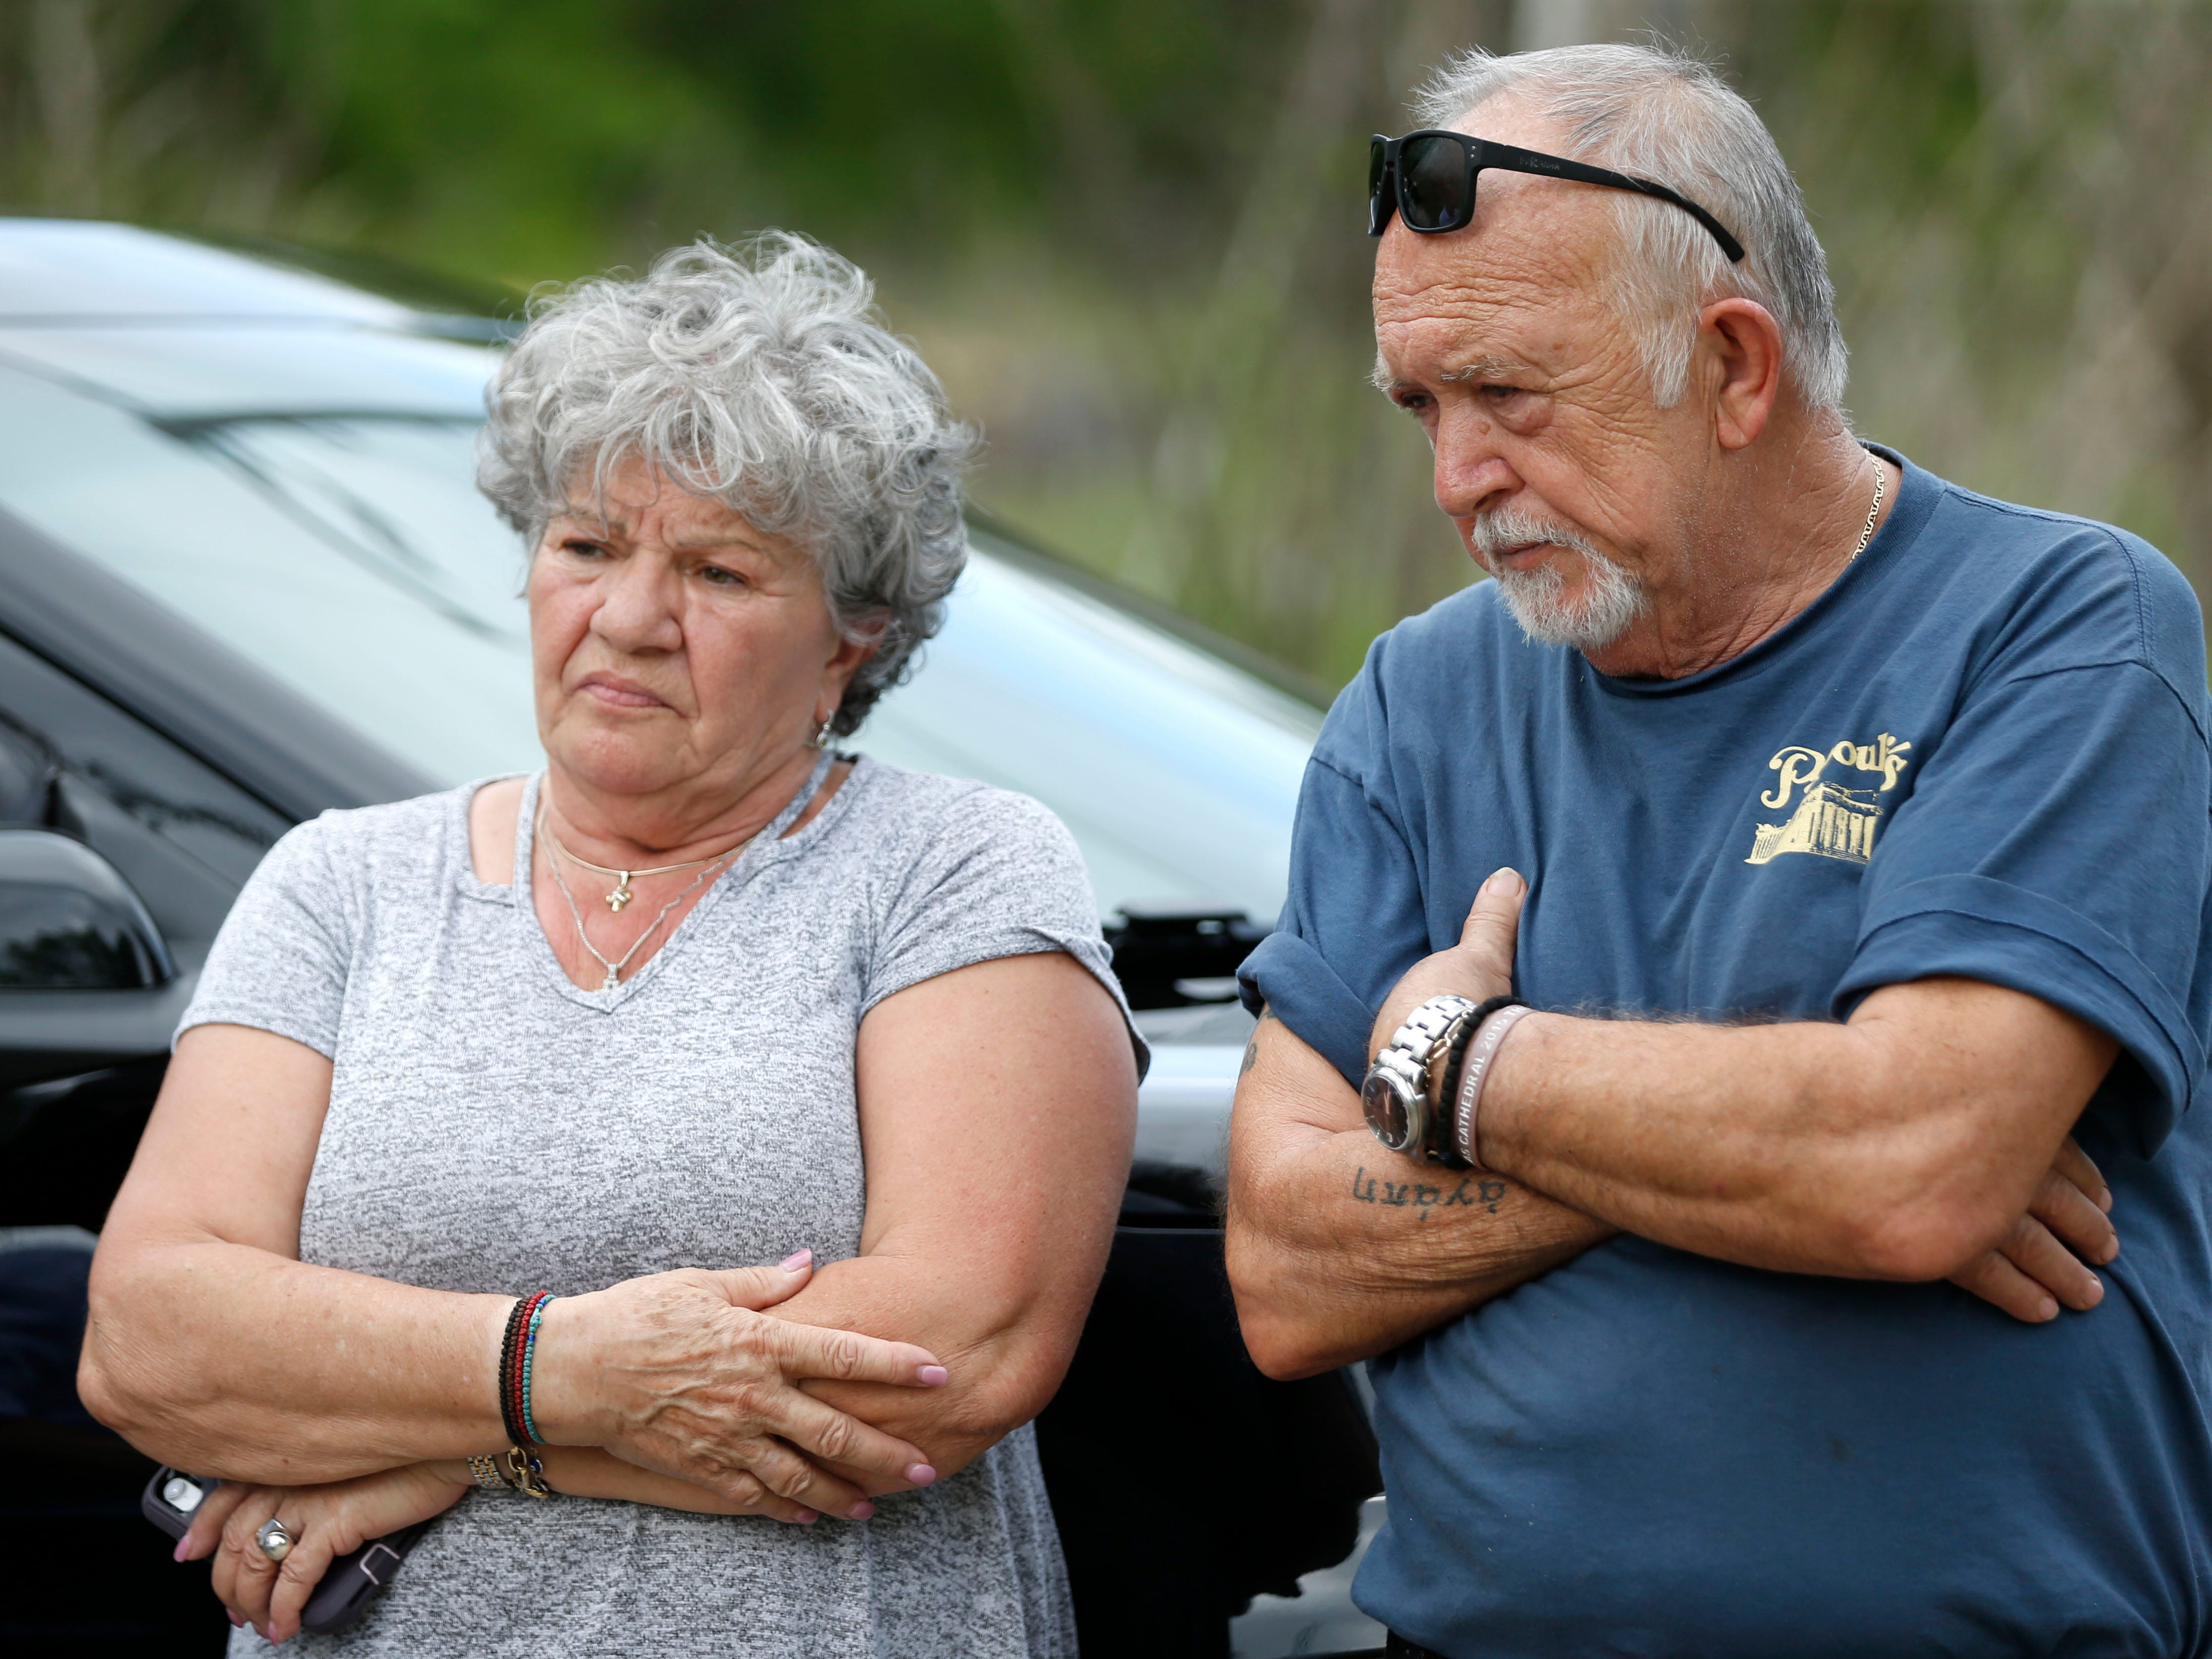 A fire broke out at Papouli's Restaurant shortly after 3 p.m.  on Wednesday, May 1, 2019, moderately damaging the Greek-style establishment beloved by many people across the Ozarks. Bessie and Tom Haldoupis, owners of Papouli's since 1986, were on scene.